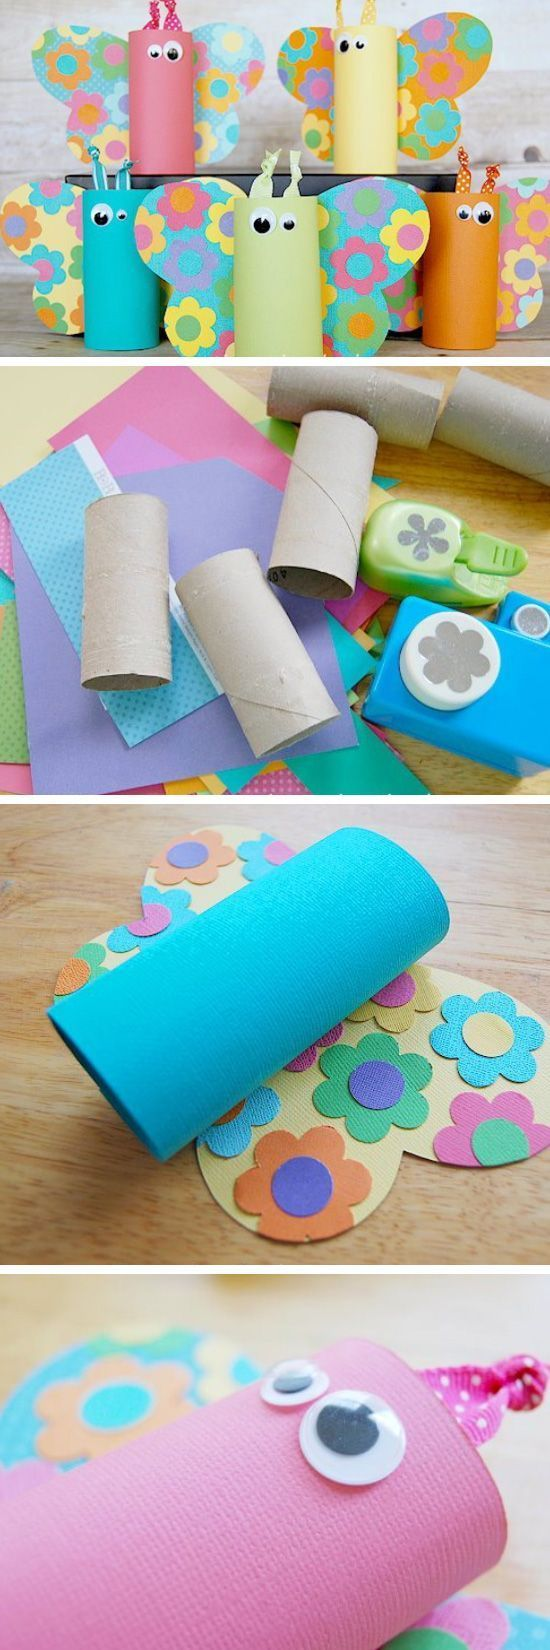 143 best Toilet Paper Roll Crafts images